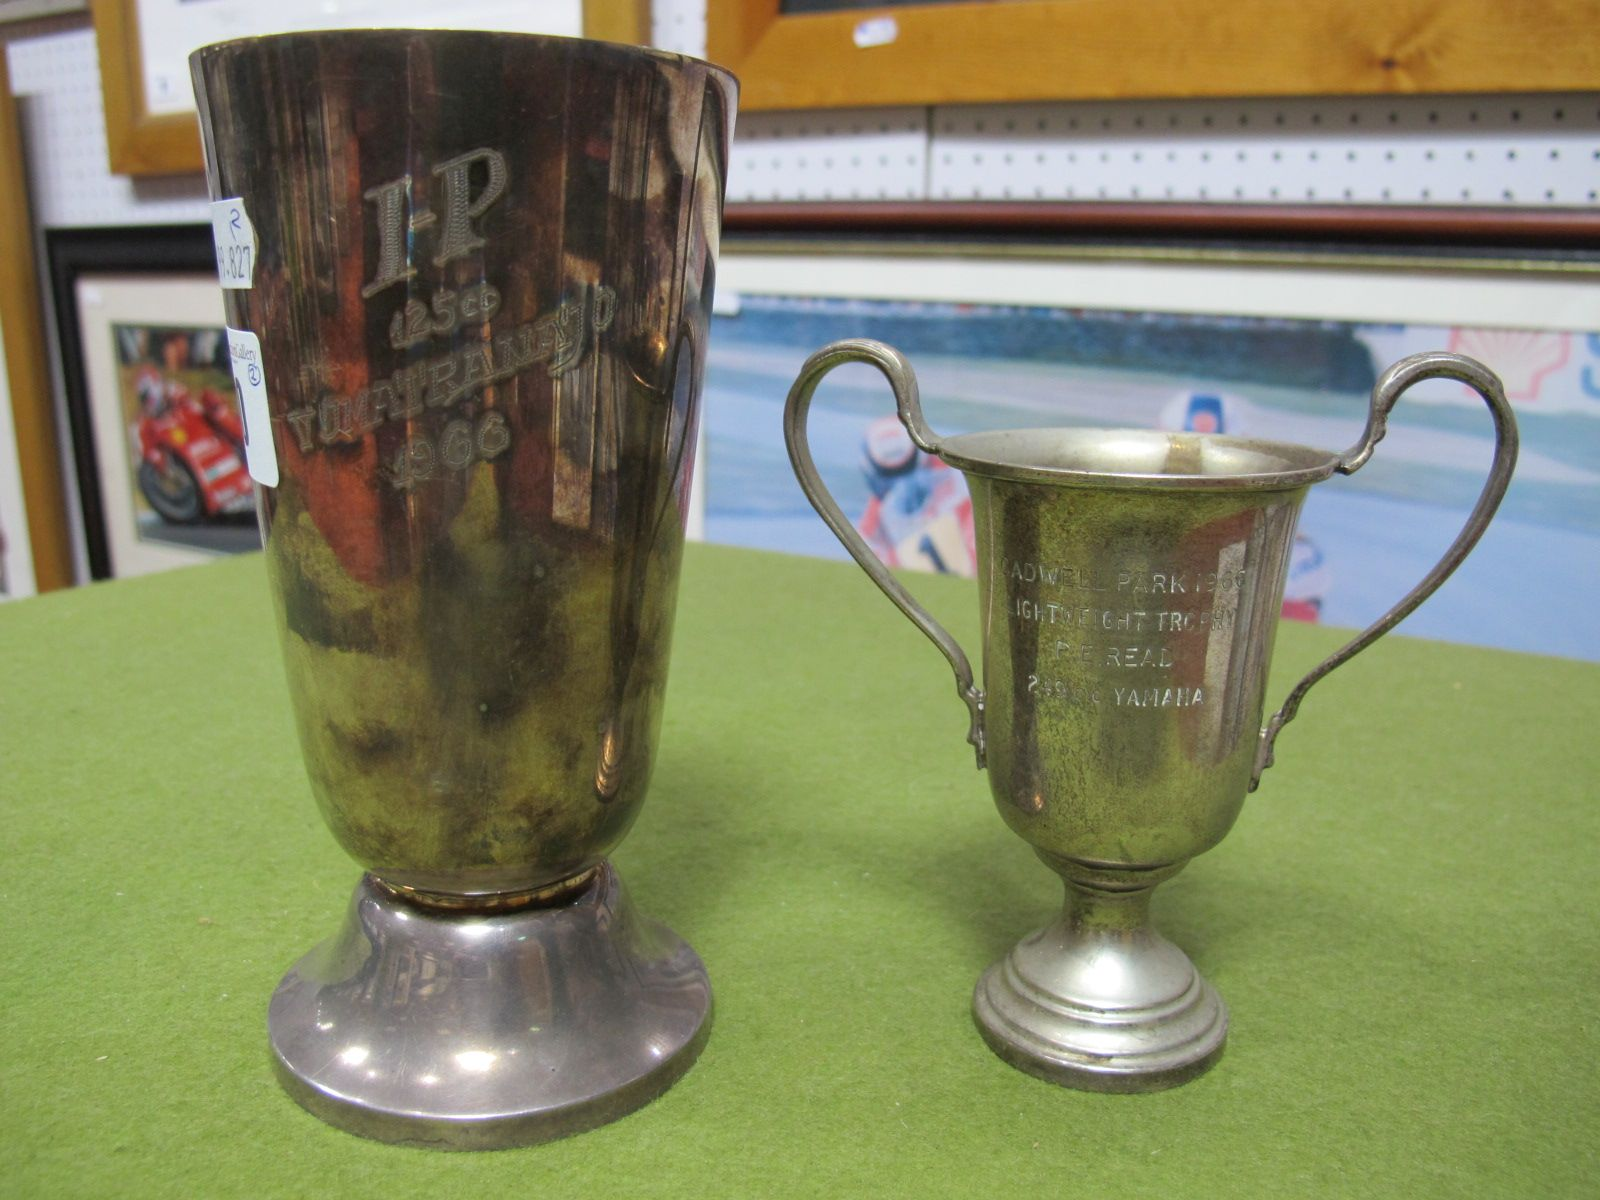 Lot 30 - Two Phil Read Trophies, one Finnish Grand Prix 125CC winner and small Cadwell park lightweight